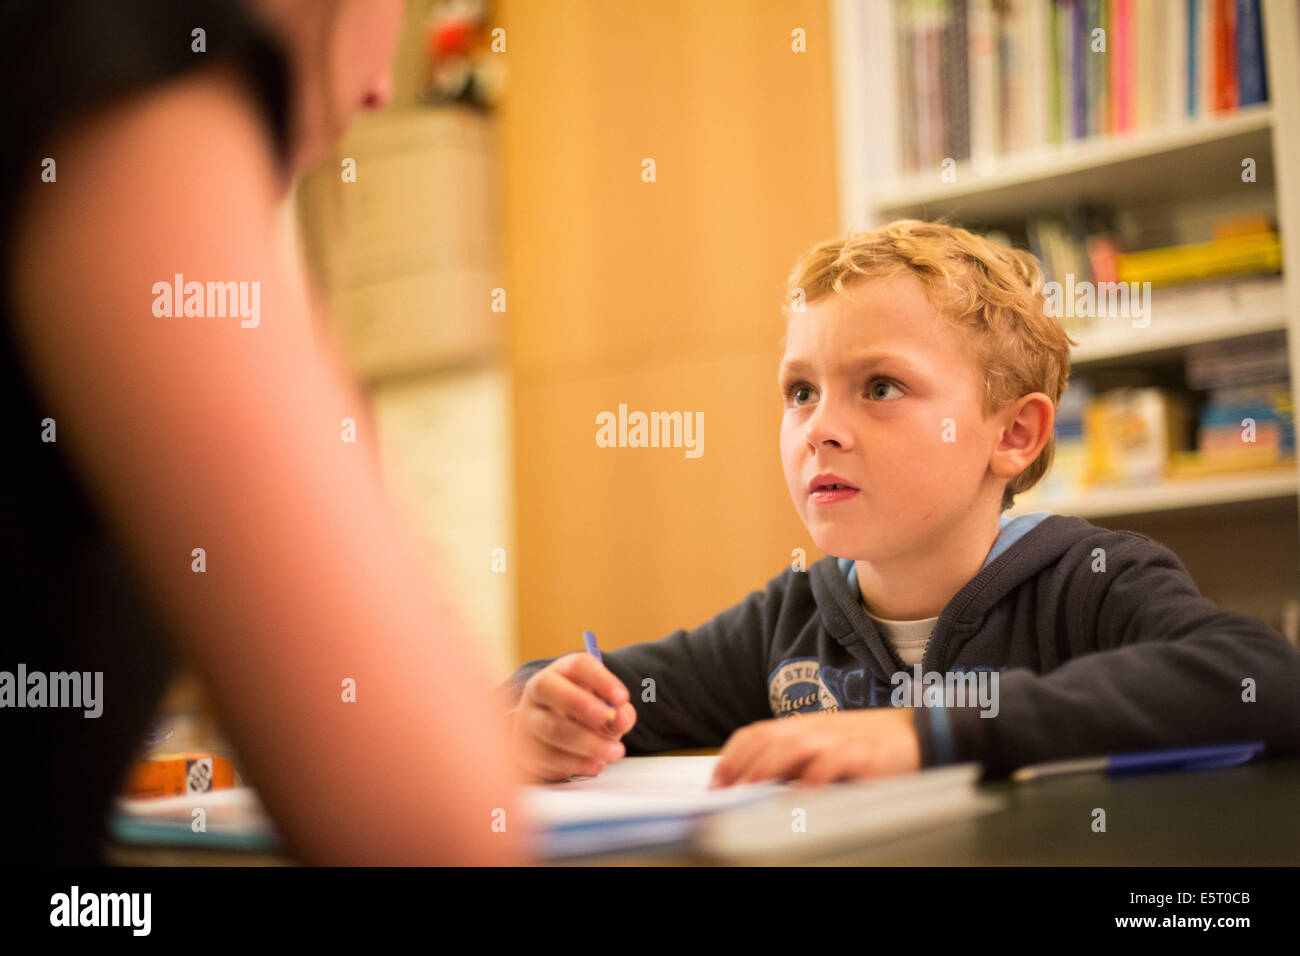 Child in a session with a speech therapist. - Stock Image